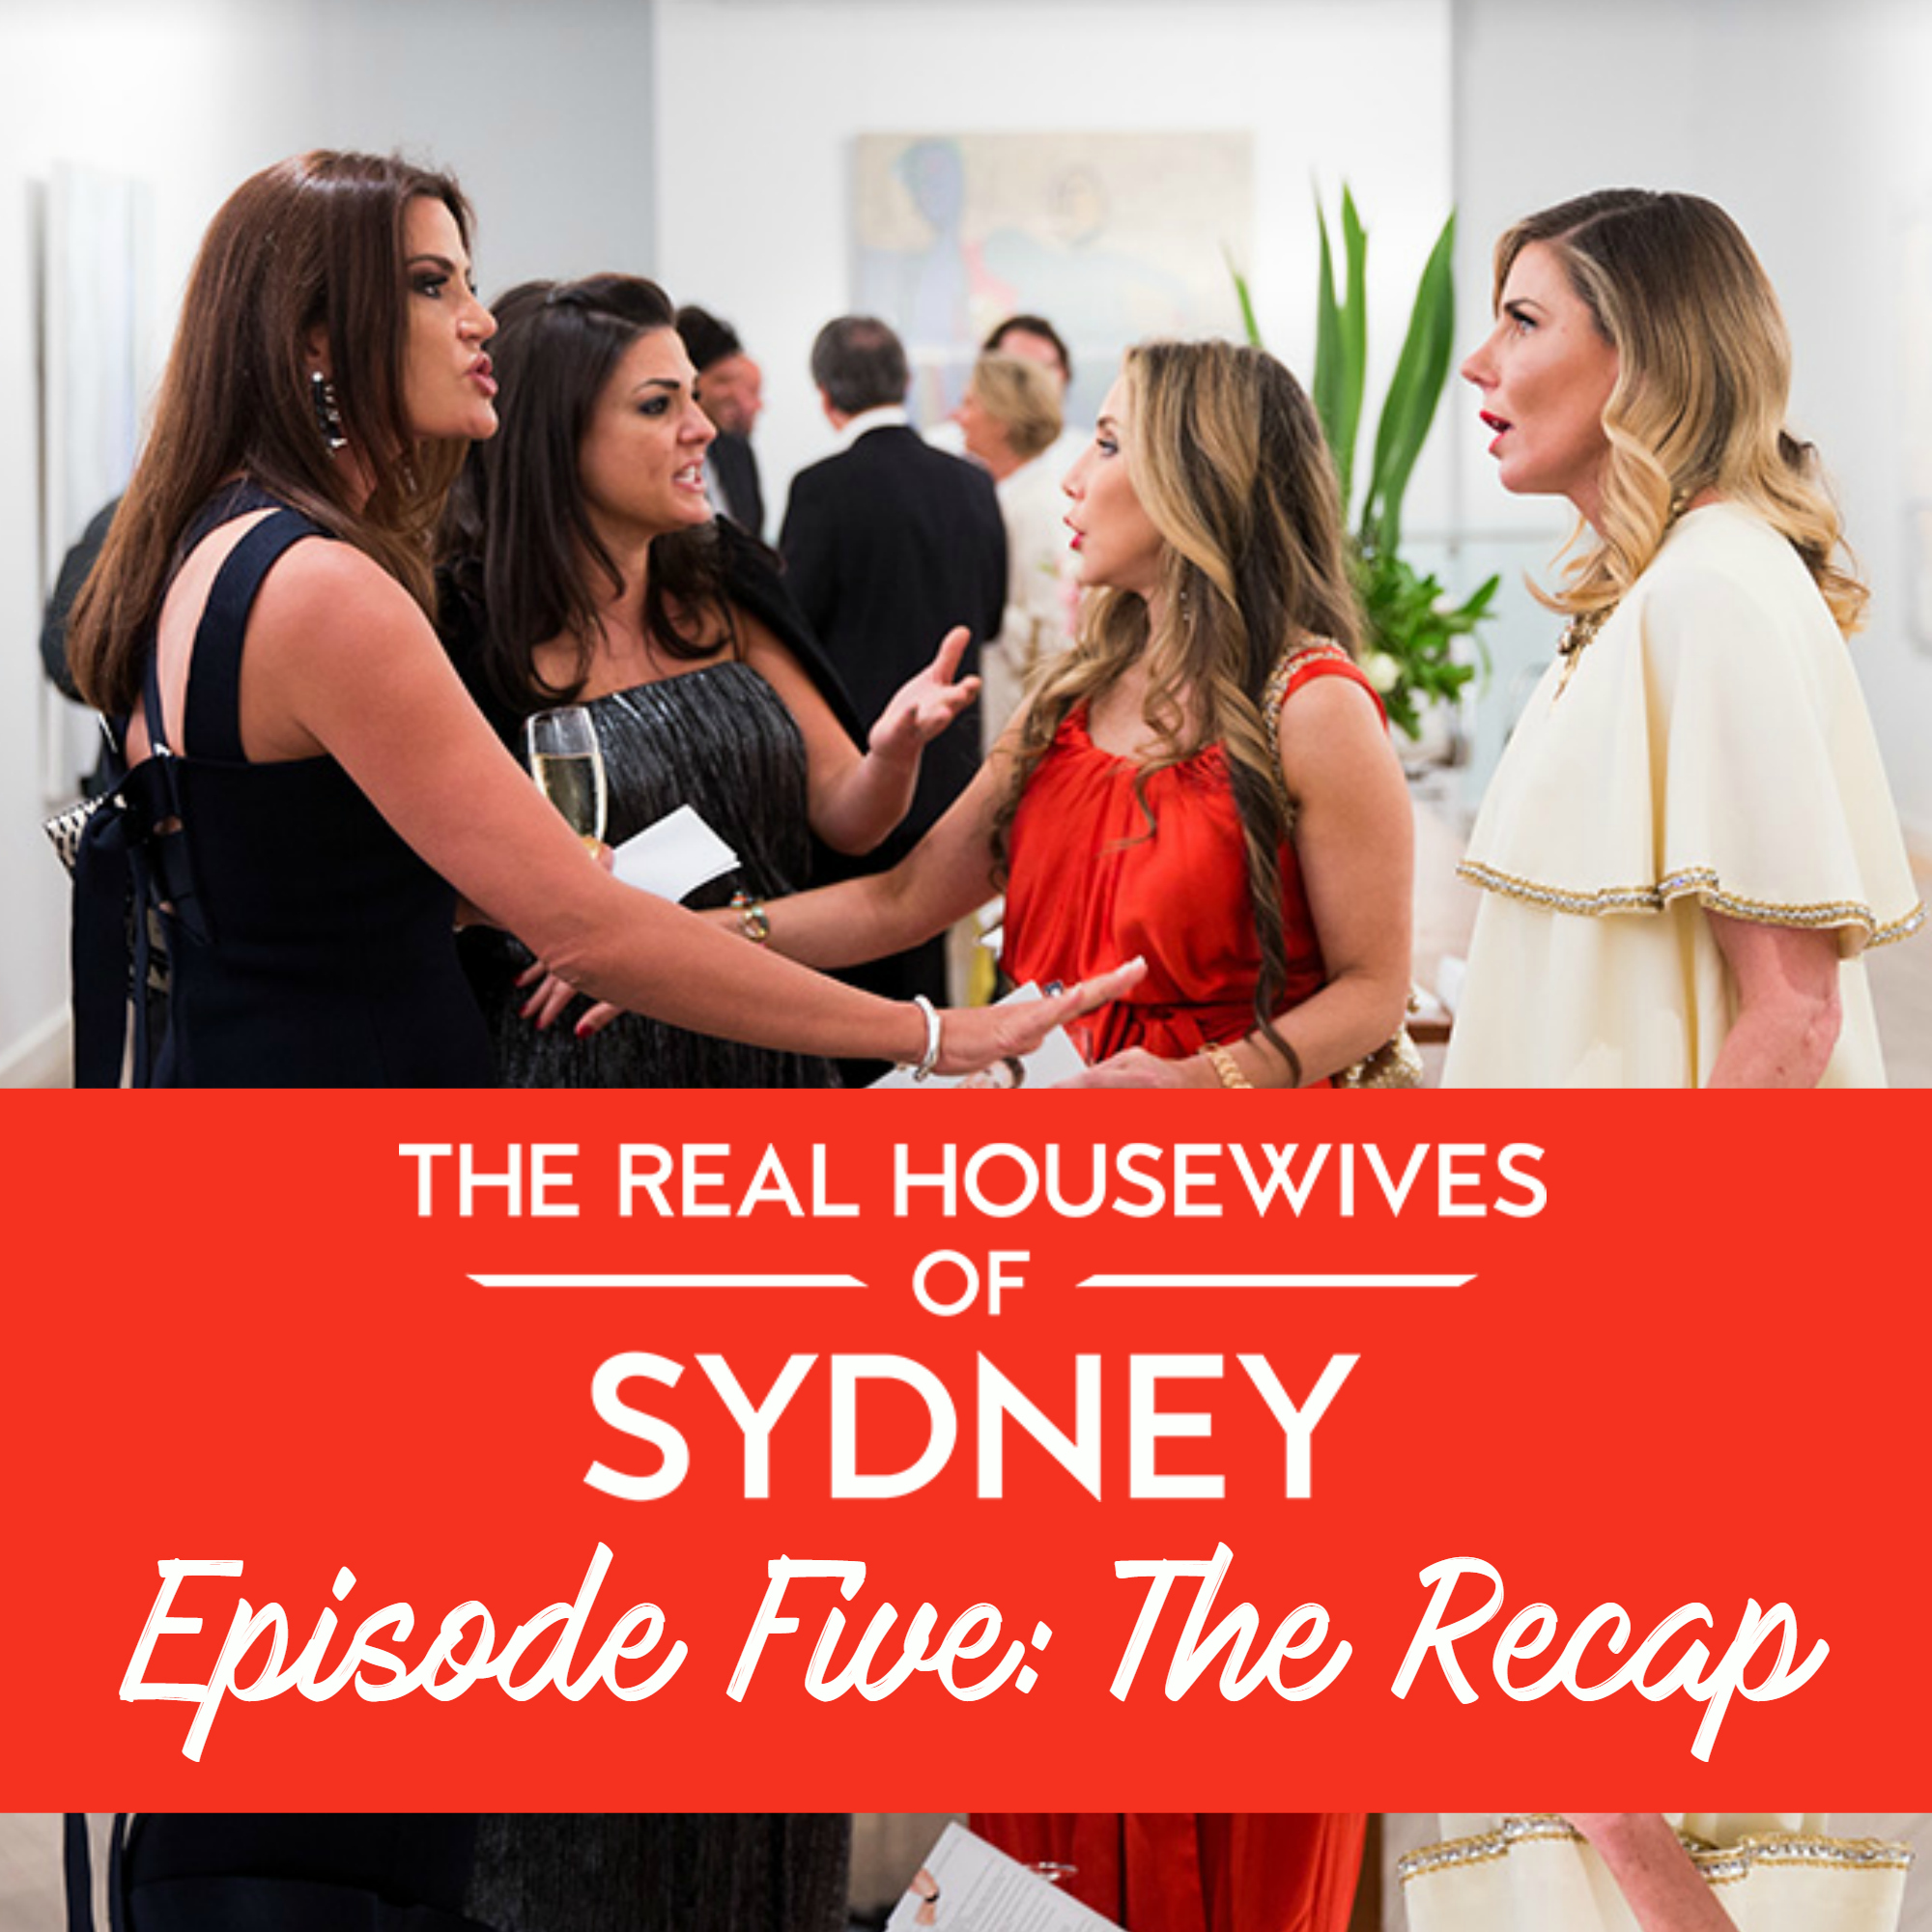 Real Housewives of Sydney Series One Episode Five Recap